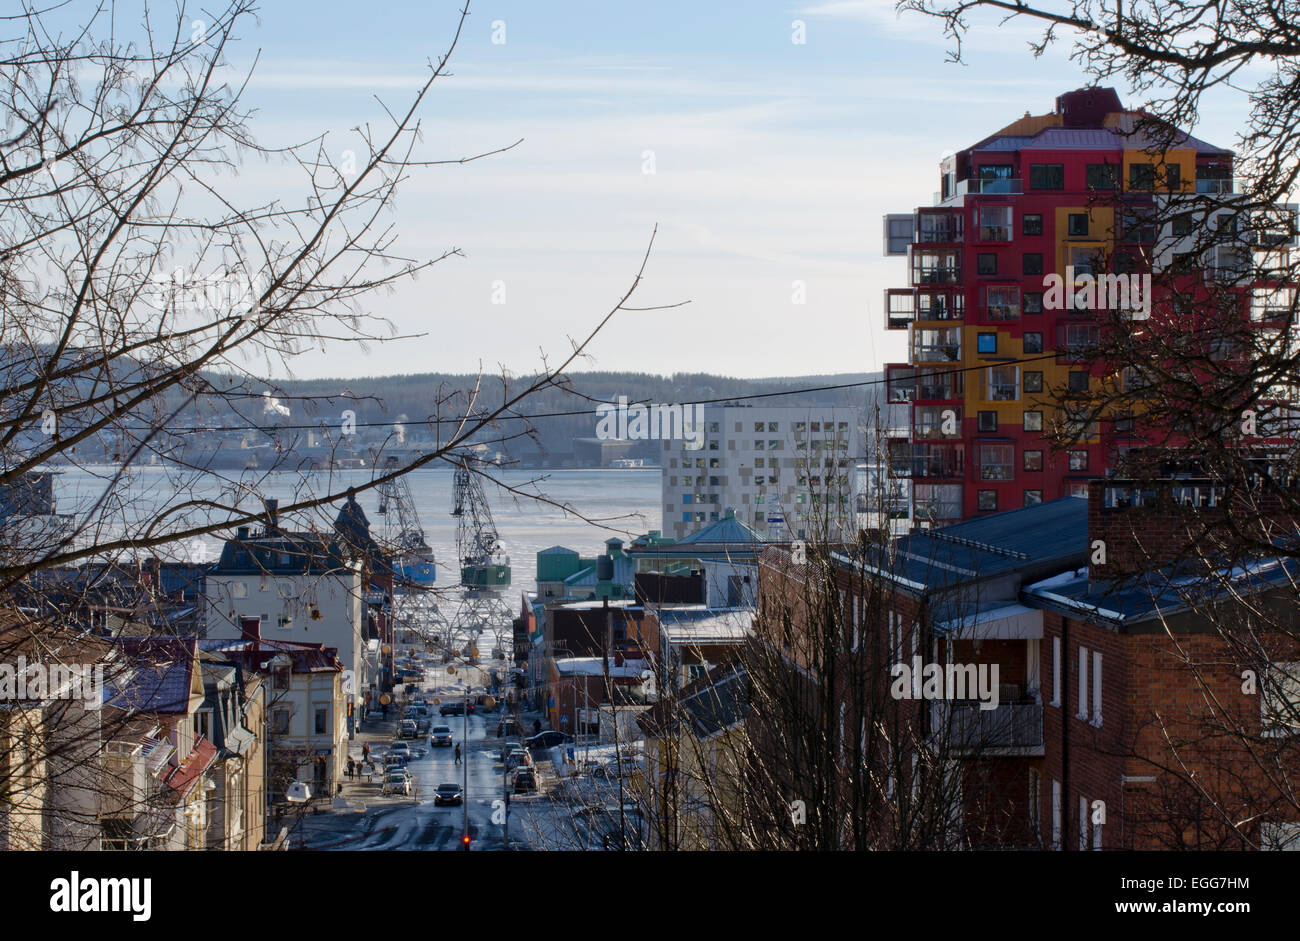 View from upper part off town along main business street with harbor in background. - Stock Image